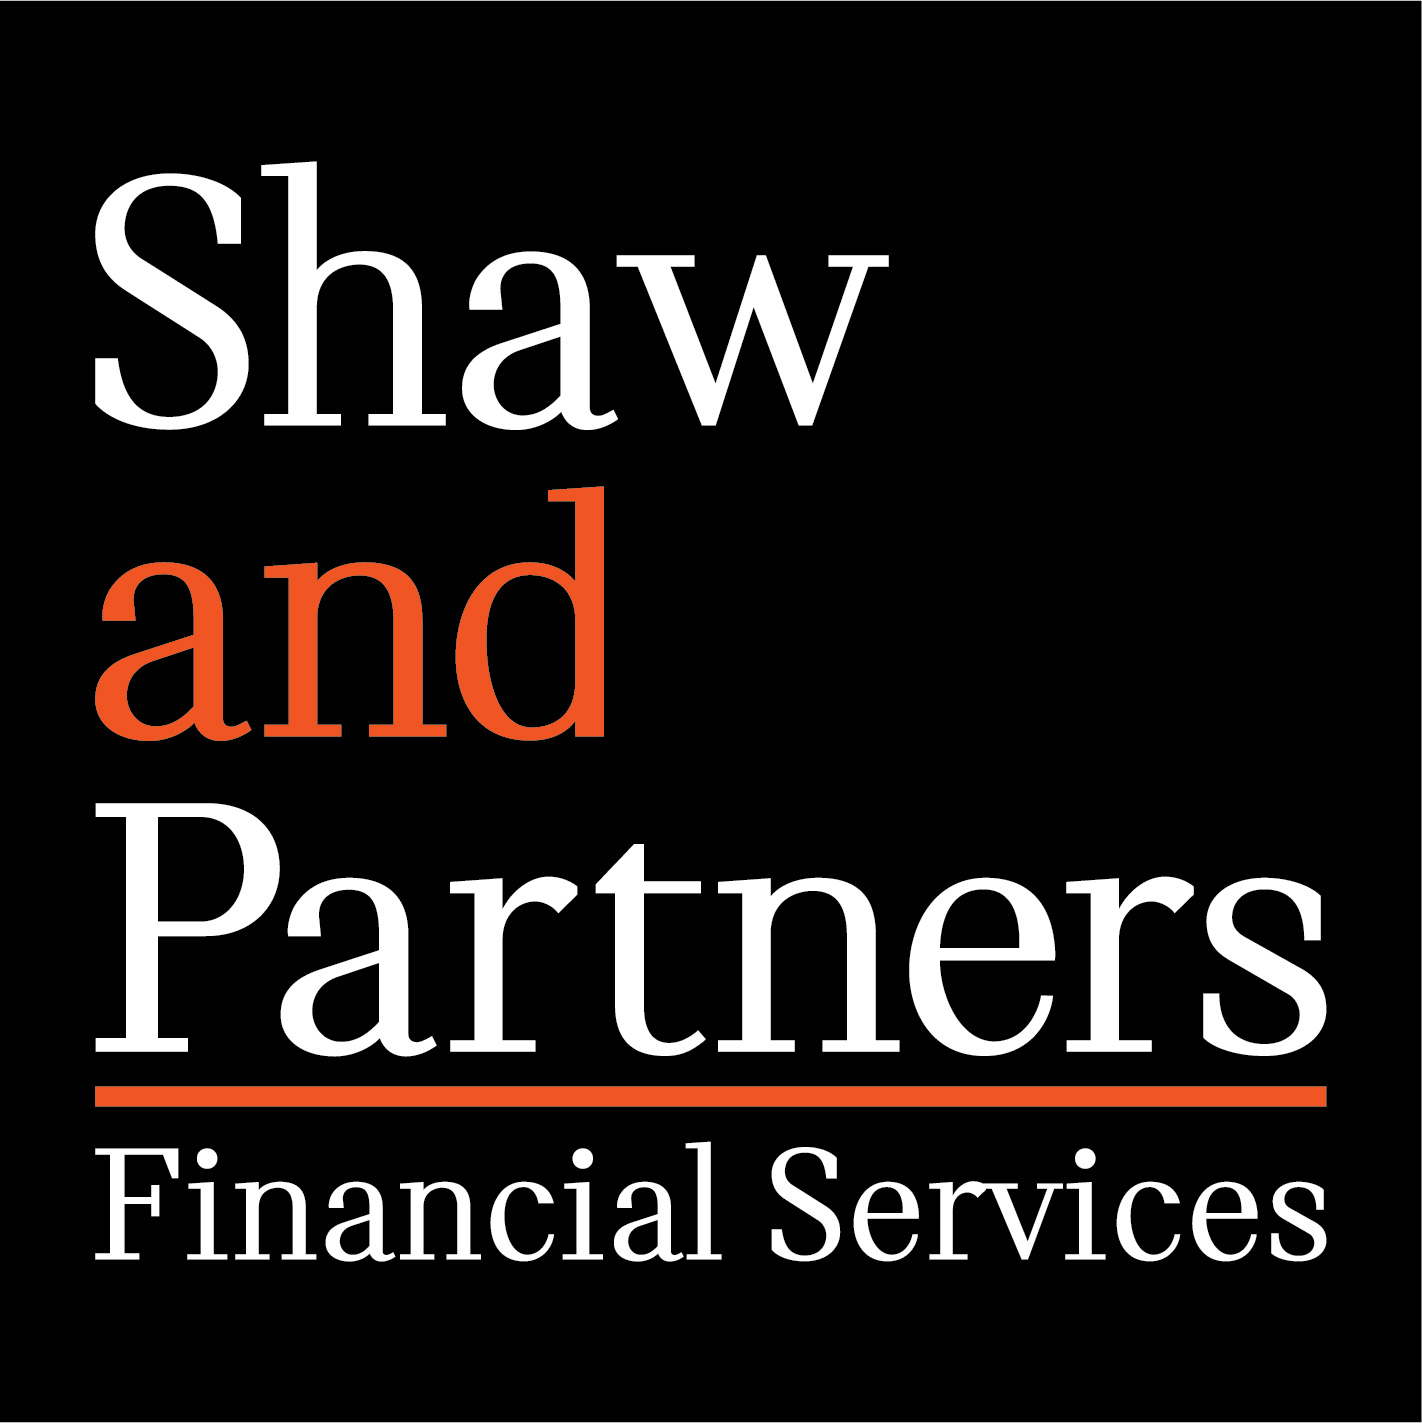 Picture of Shaw & Partners Financial Services